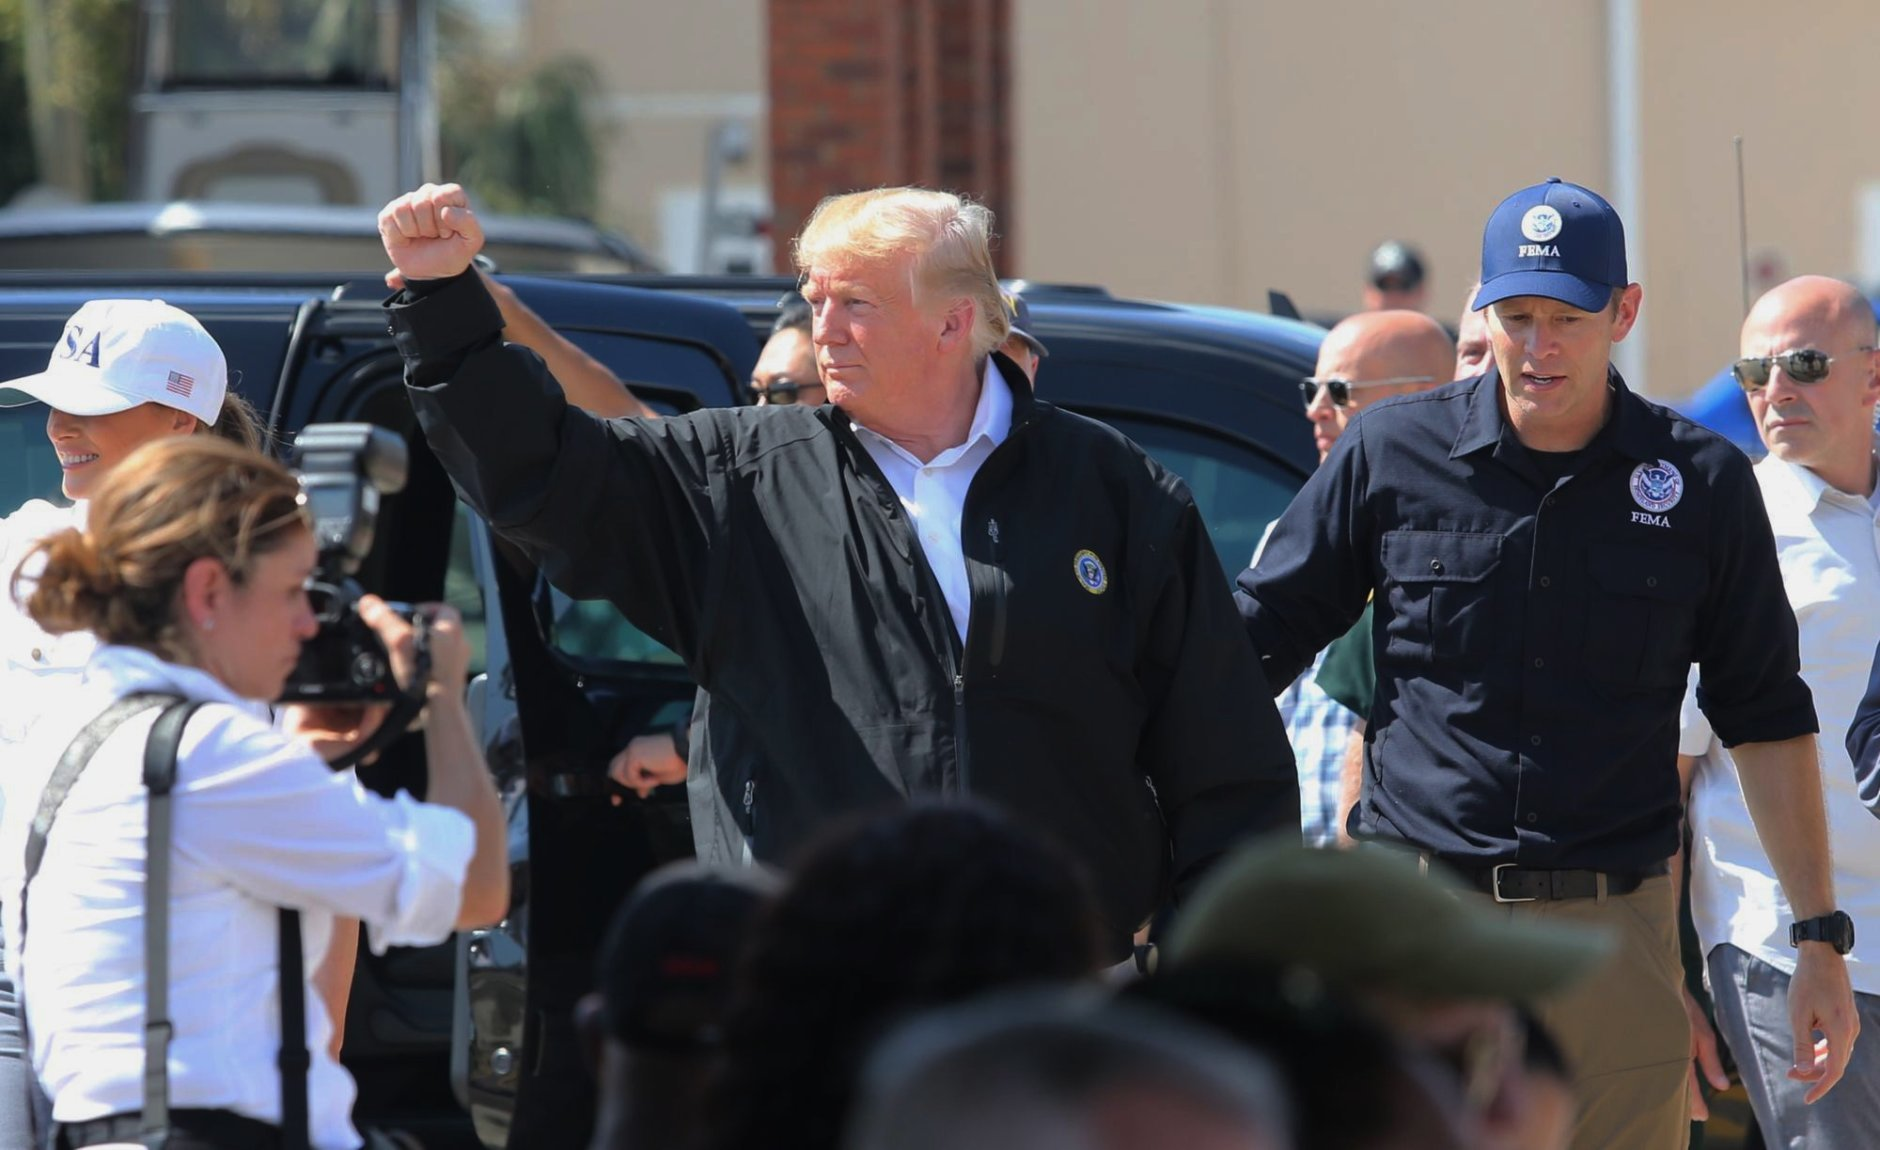 """President Donald Trump raises his fist to chants of """"USA"""" during a visit Monday, Oct. 15, 2018, to Lynn Haven, Fla., to see storm damage and recovery efforts following Hurricane Michael. Trump marveled at the roofless homes and uprooted trees he saw Monday while touring Florida Panhandle communities ravaged by the force of the hurricane. (Michael Snyder/Northwest Florida Daily News via AP)"""